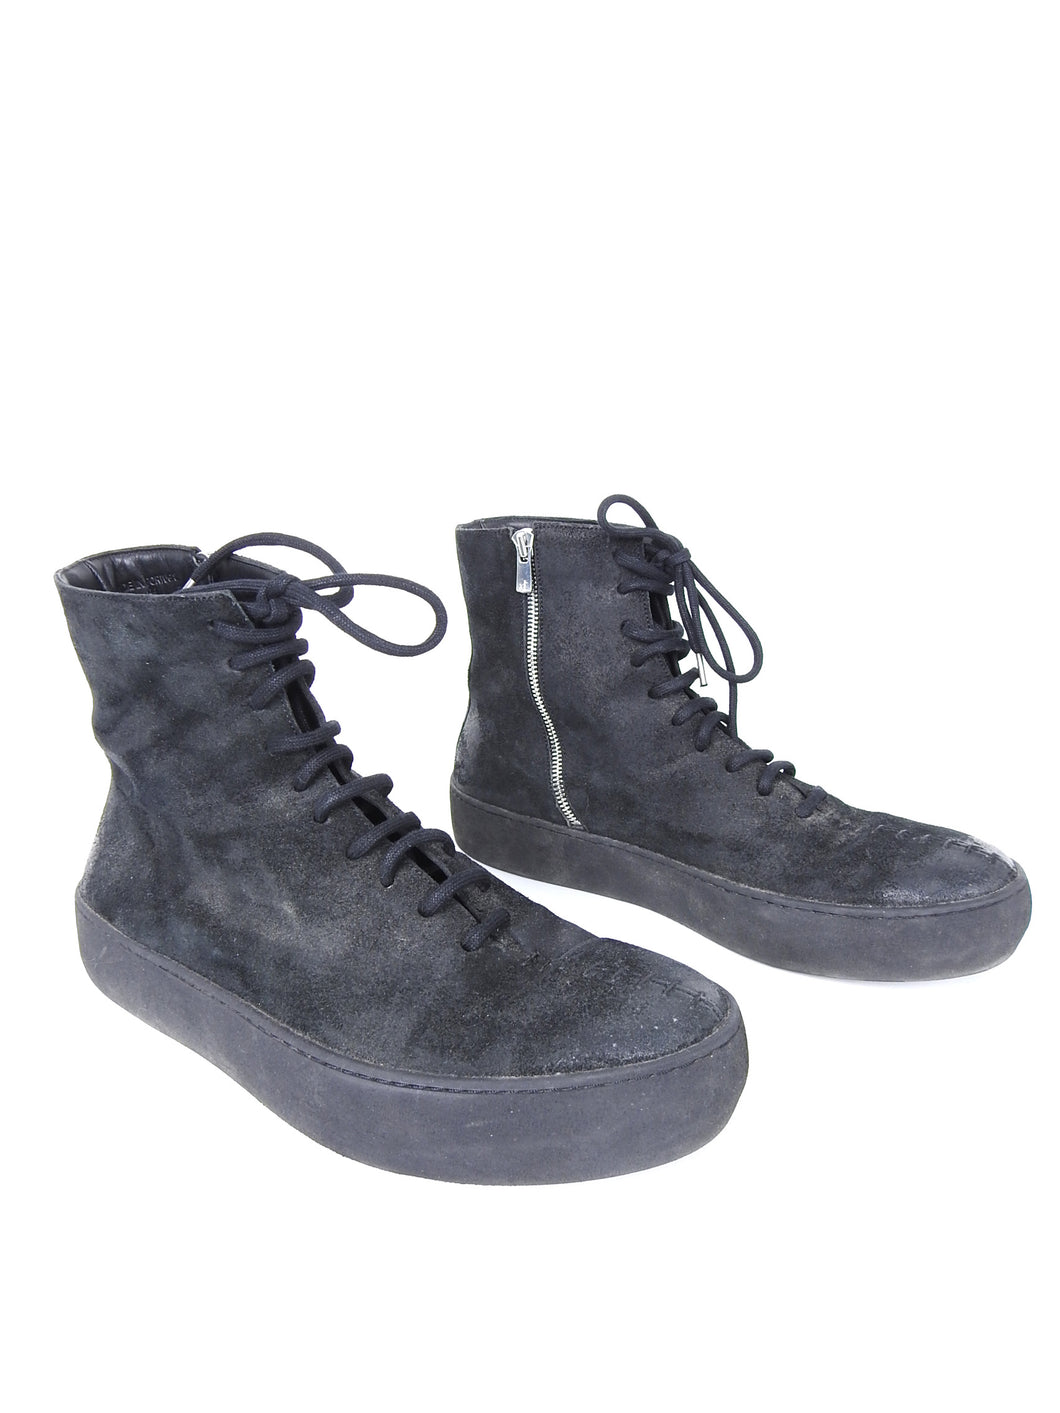 The Last Conspiracy Black Waxed Suede Side Zip Lace Up High Top Sneaker